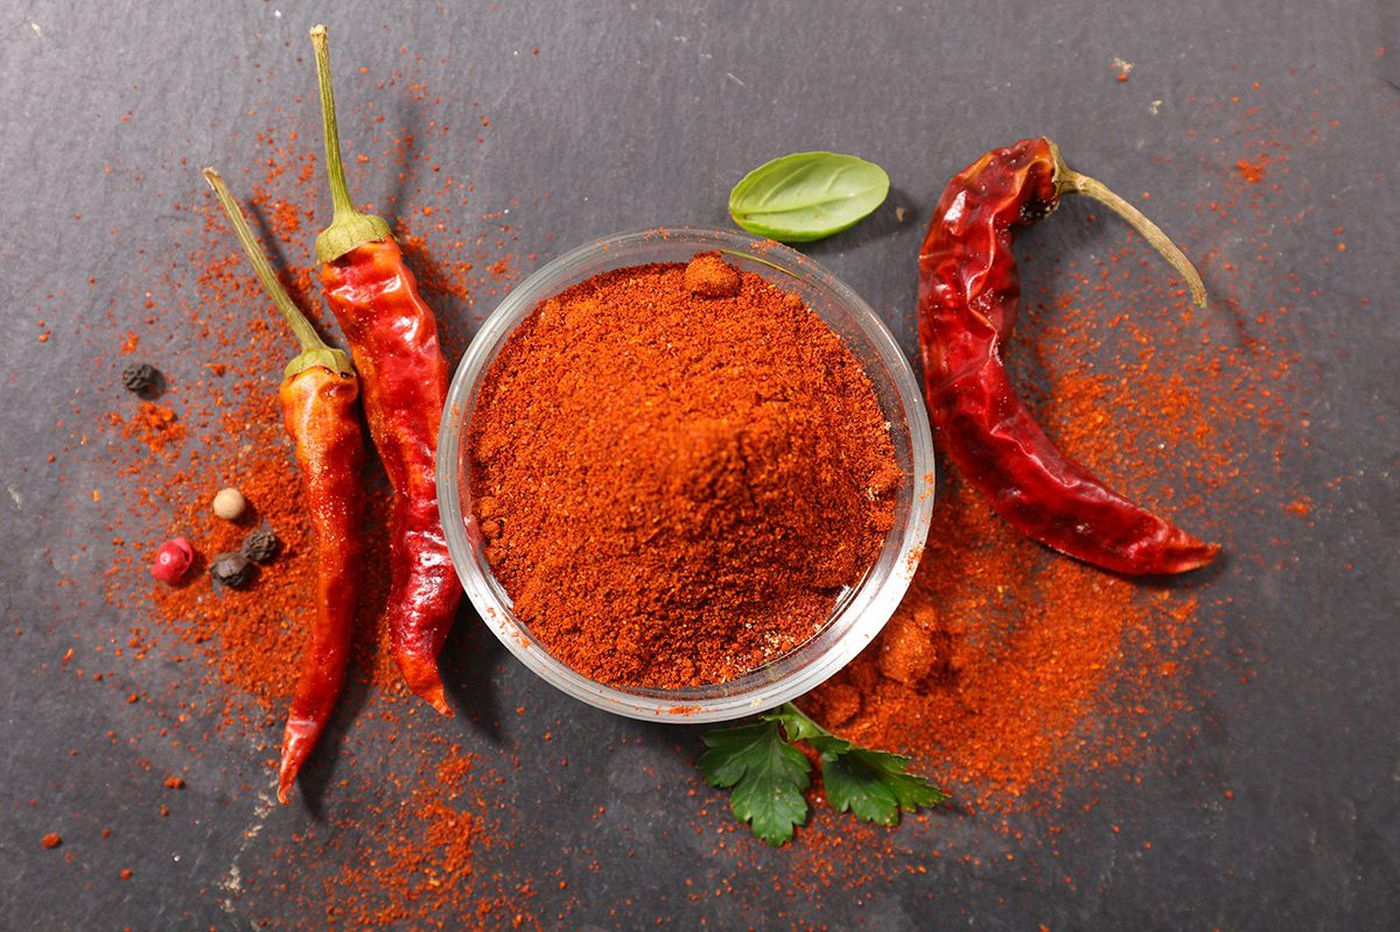 Dump the fat, sugar and salt - try spices and herbs instead